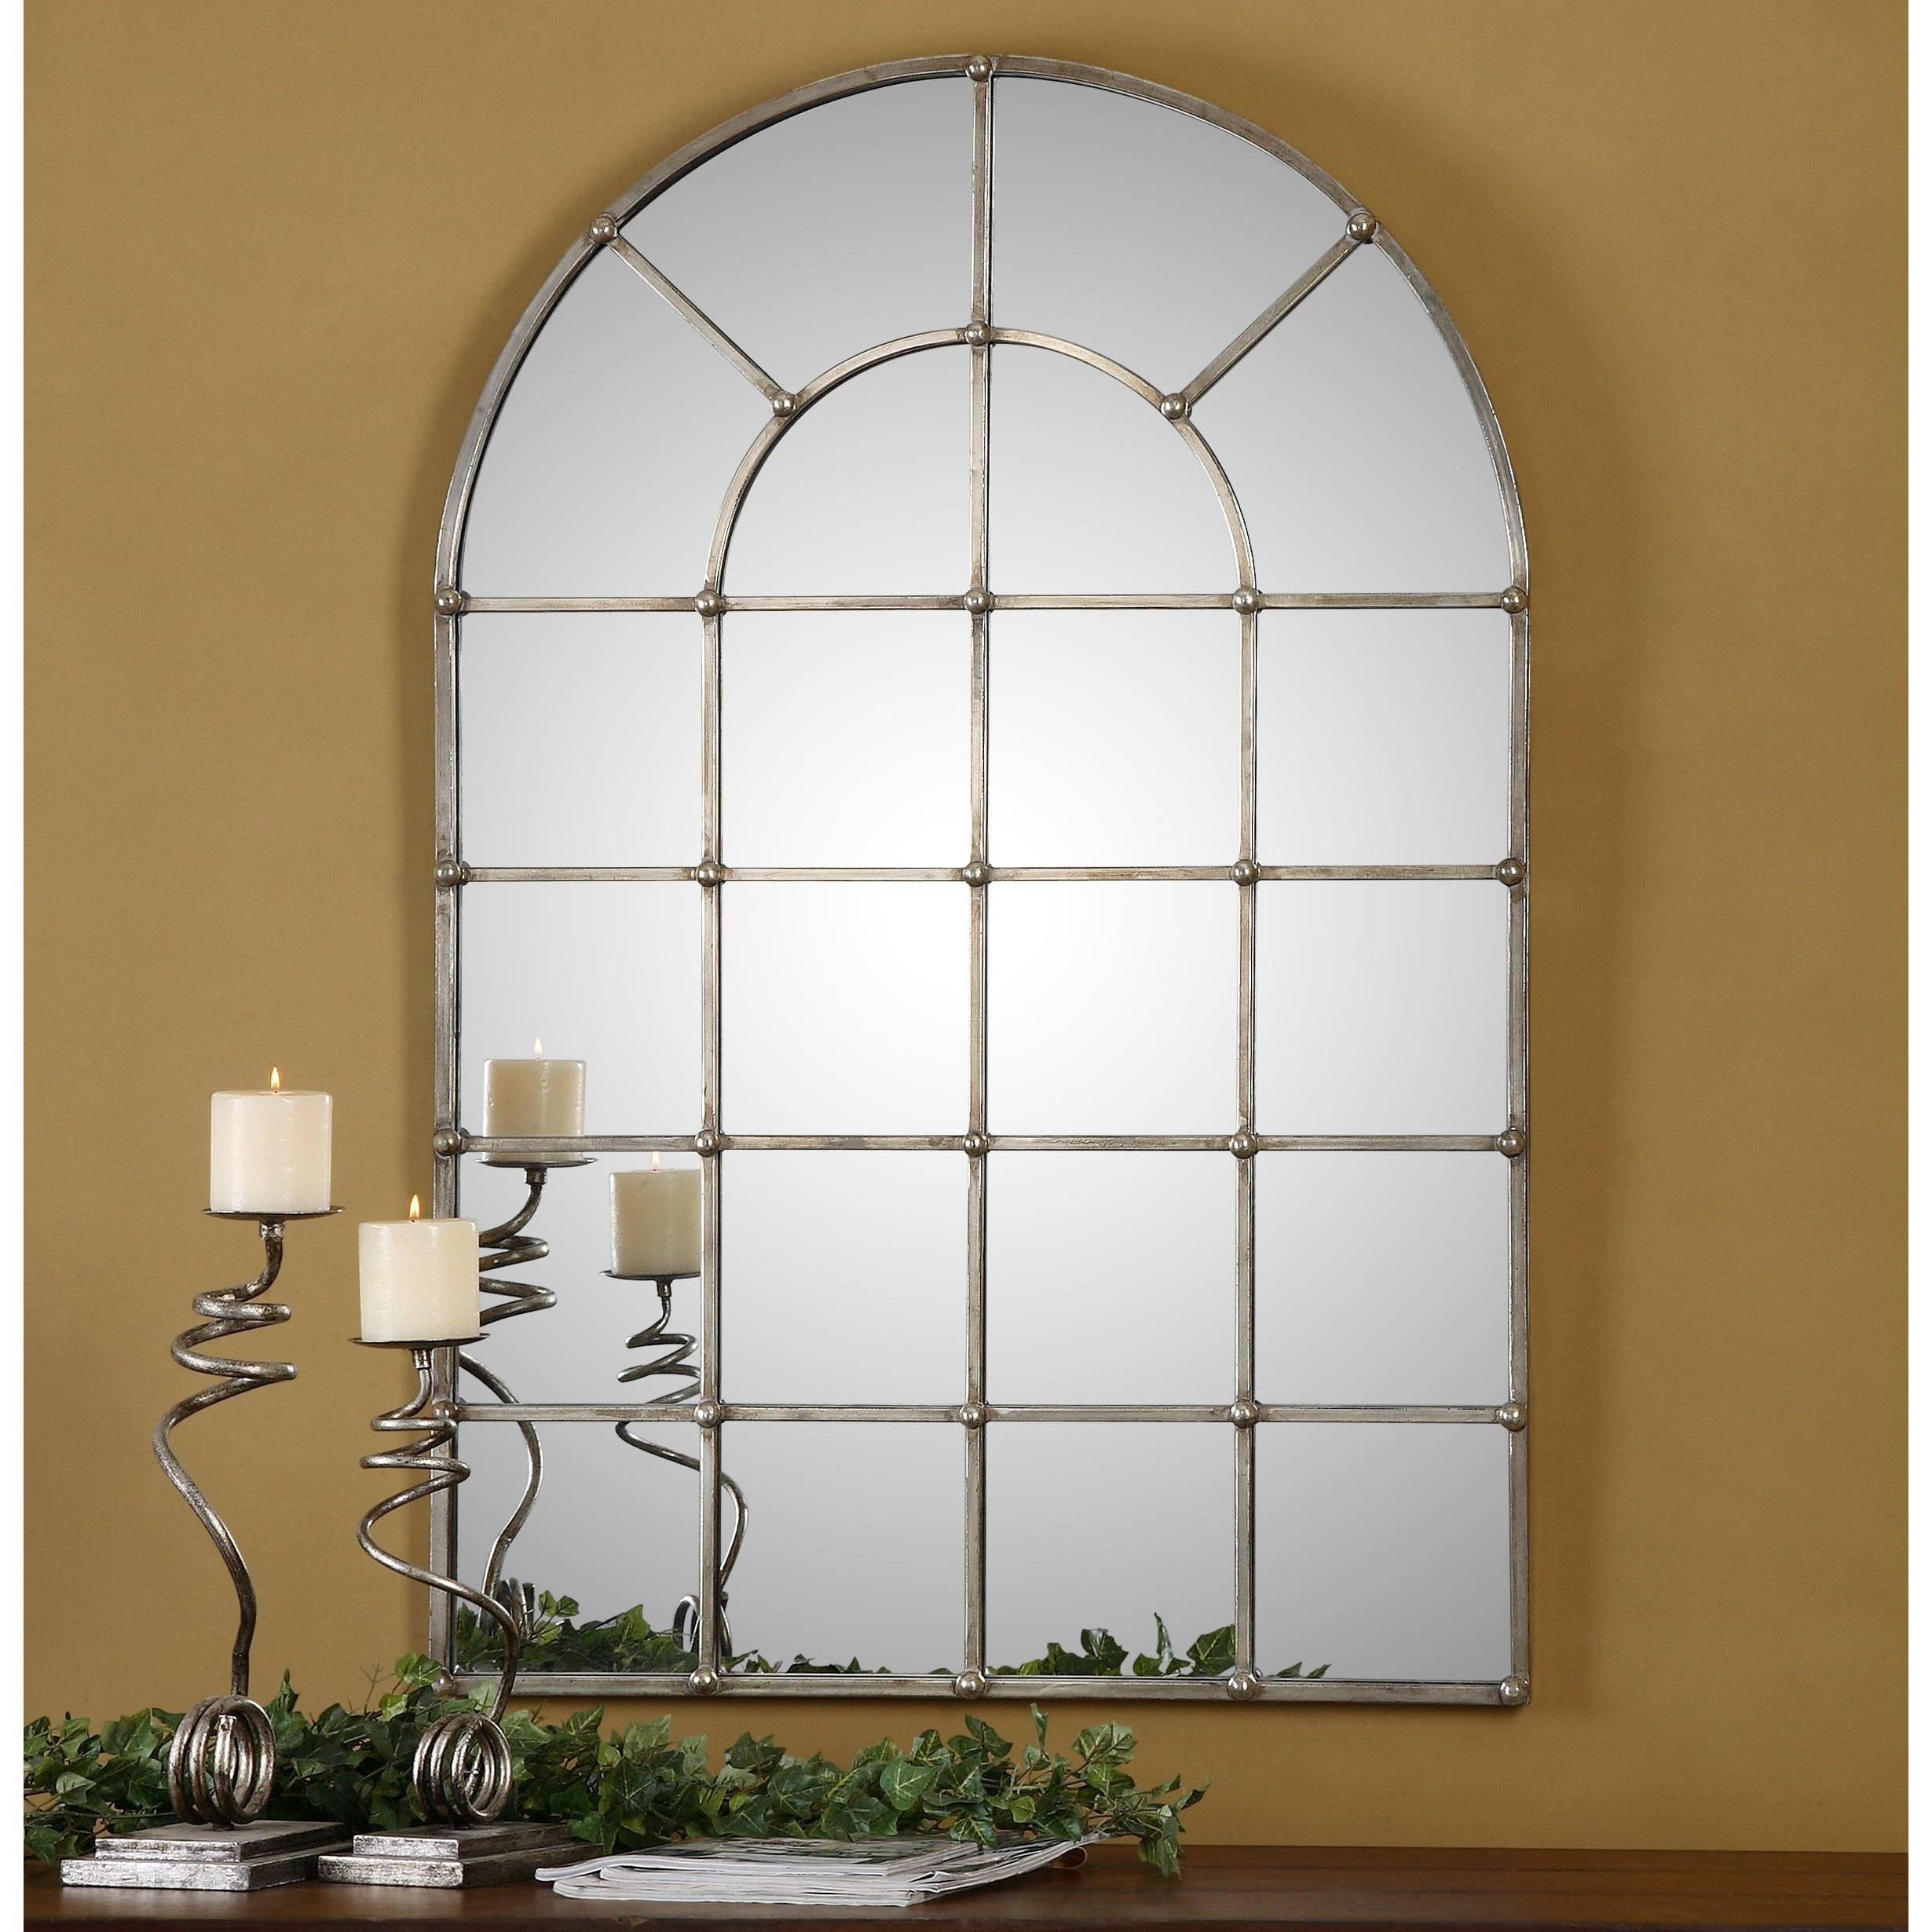 Window Pane Wall Mirror 124 Trendy Interior Or Arched Mirror Inside Arched Wall Mirrors (View 5 of 15)